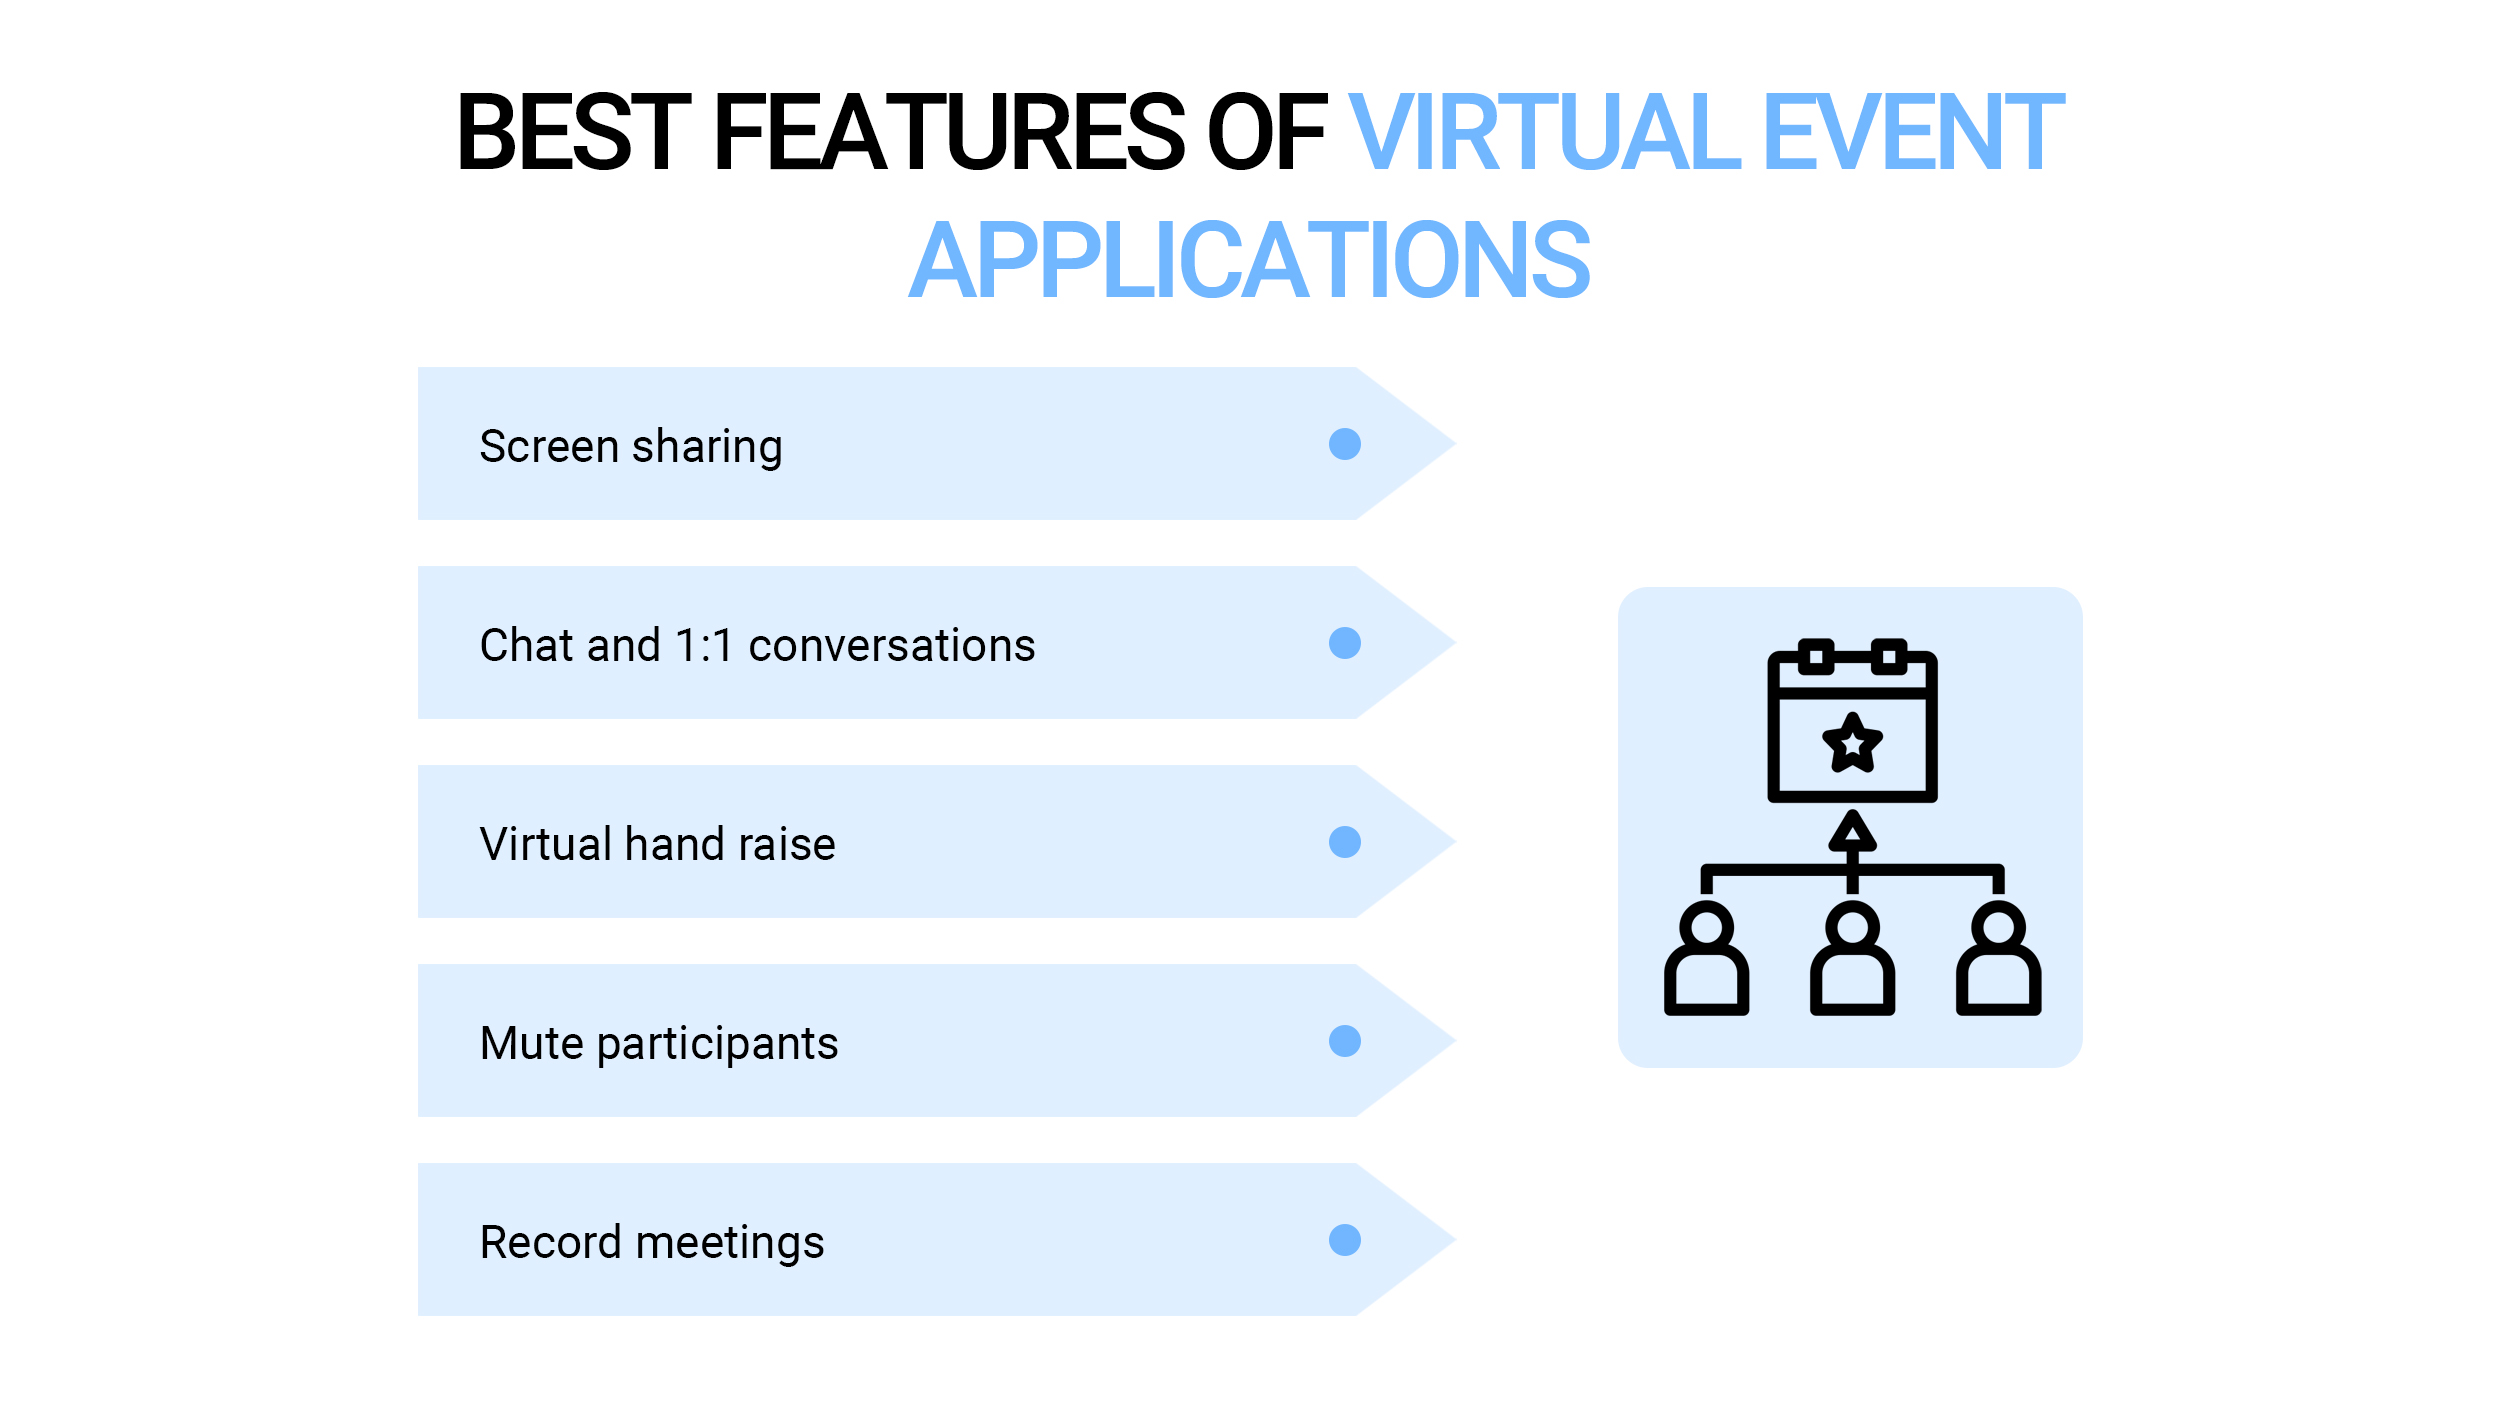 Best Features Of Virtual Event applications